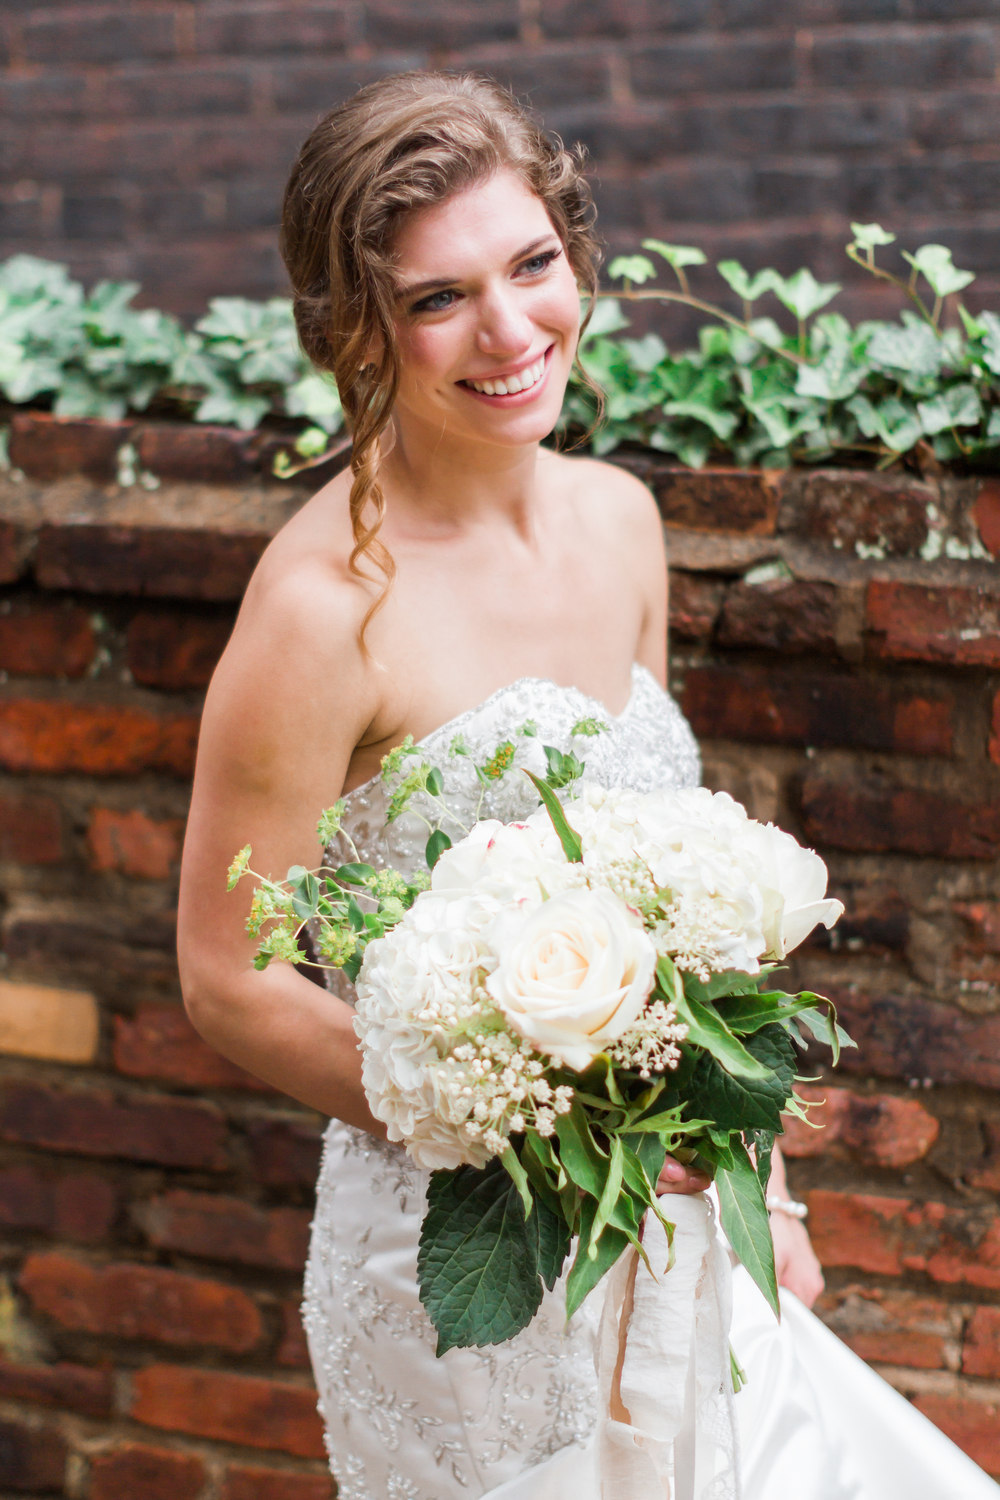 Old Town Alexandria Styled Wedding Shoot-40.jpg